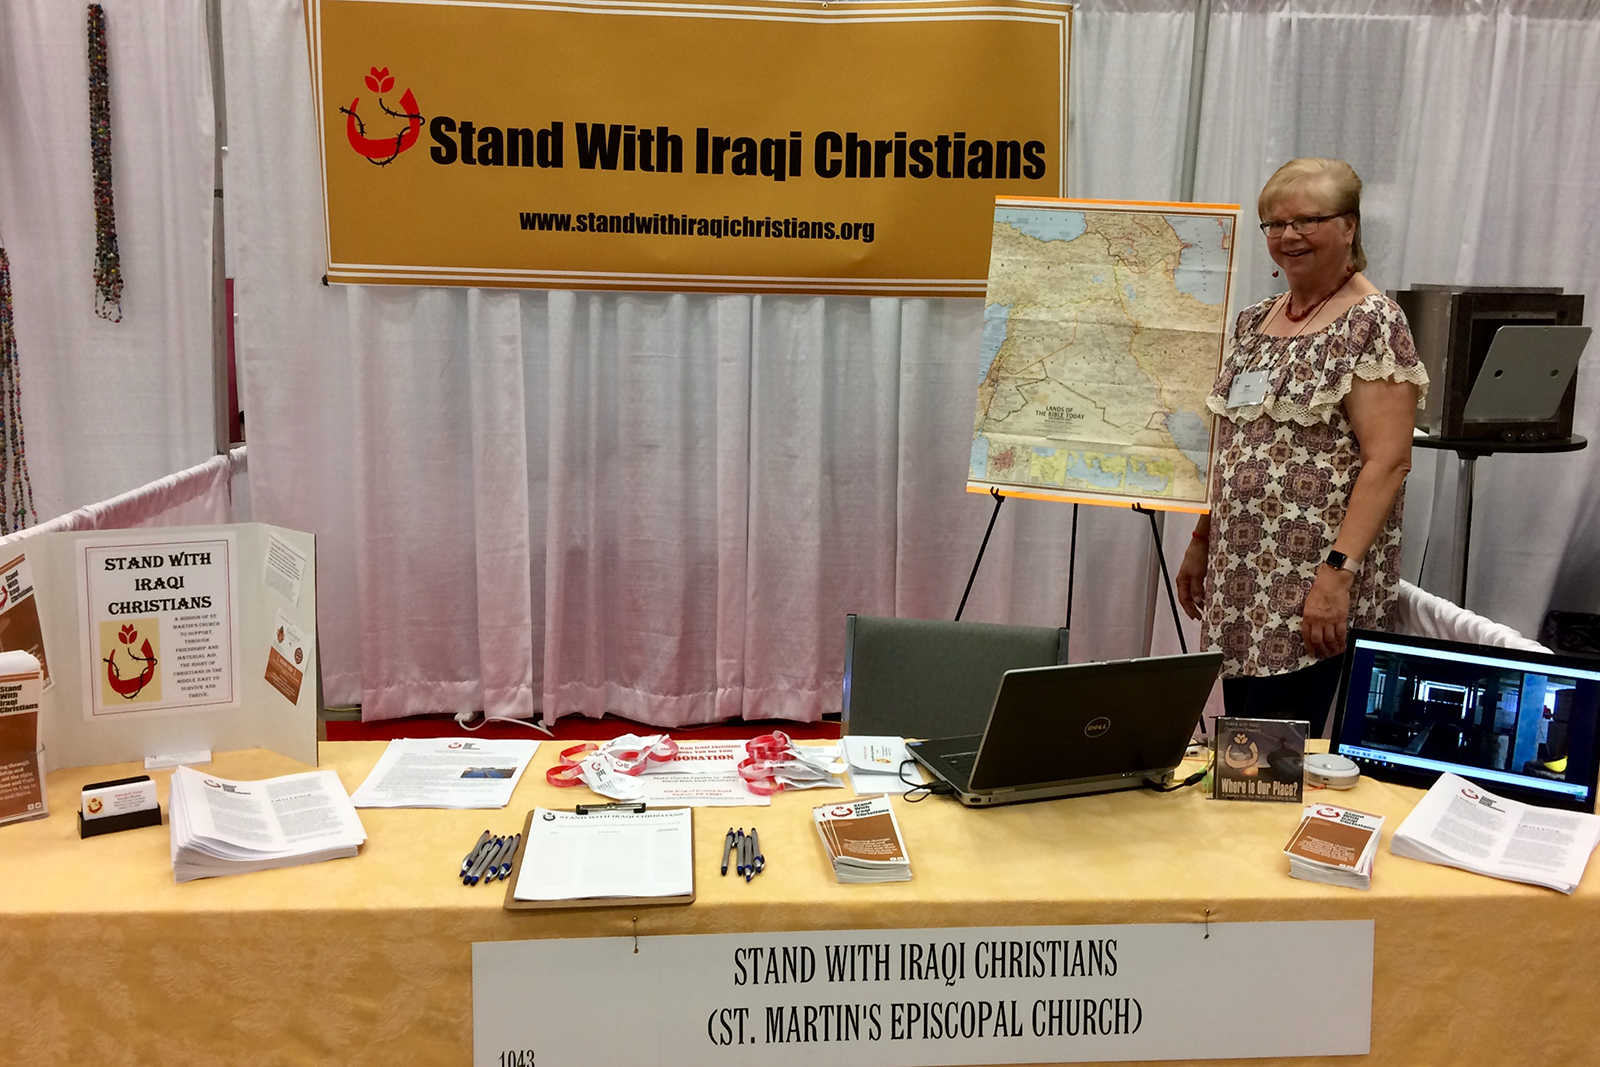 [Image description: SWIC Executive Director Deb Parker stands behind the SWIC booth table at the 2018 Episcopal Church General Convention. Behind her is a banner with the SWIC name and logo and an easel with a map of Iraq. The table has brochures, fliers, pens, etc.]